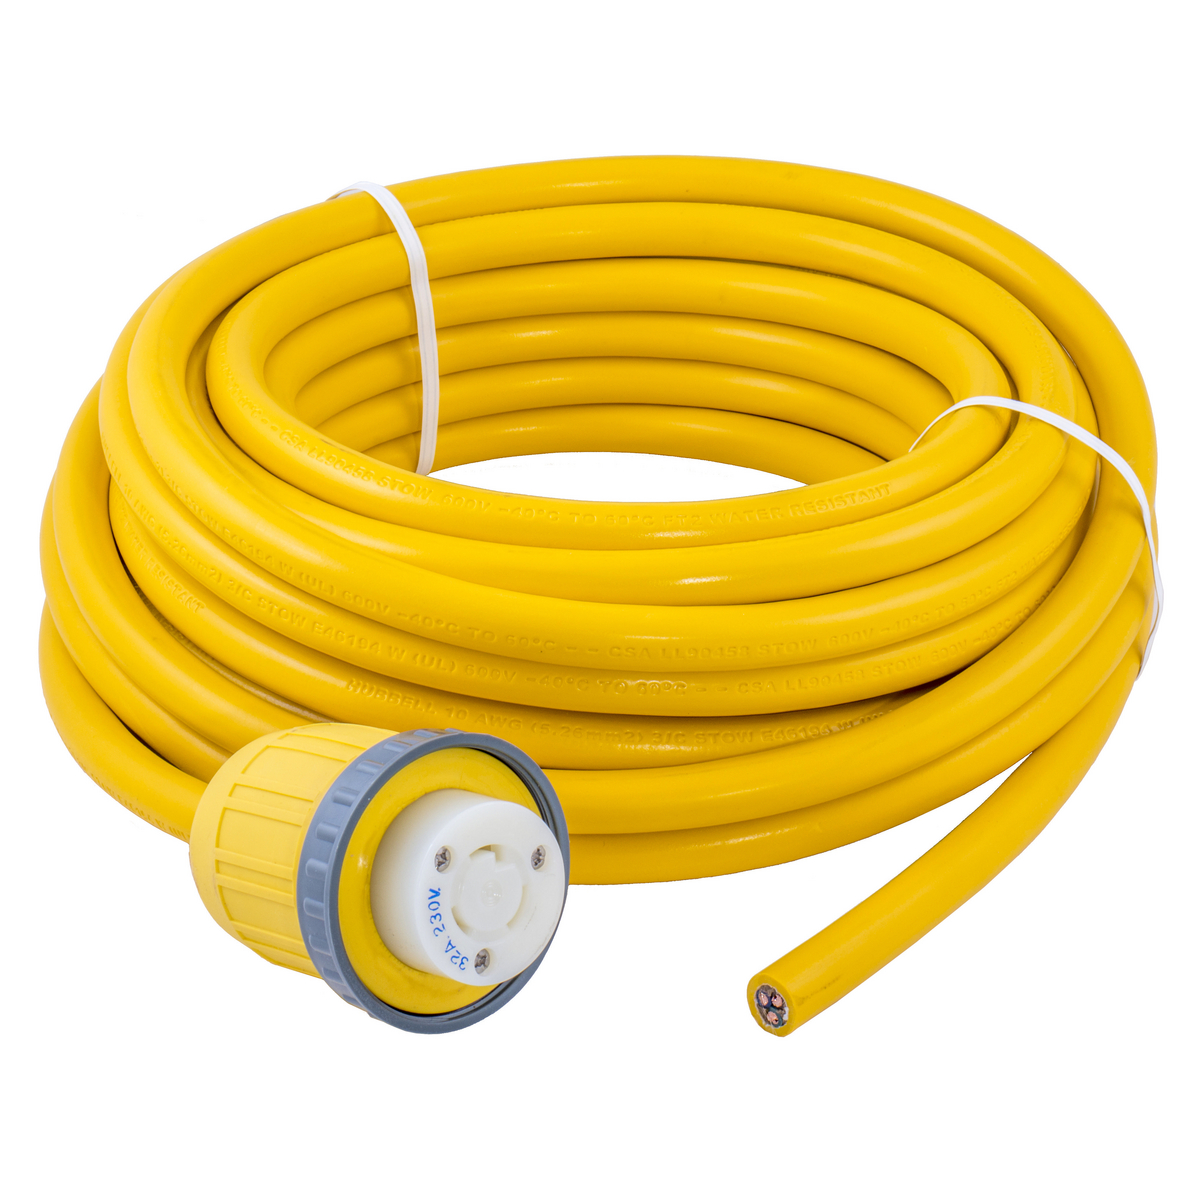 Hubbell Wiring Device-Kellems,HBL332CS,MARINE CABLE, 32A 230V, 50' YELLOW